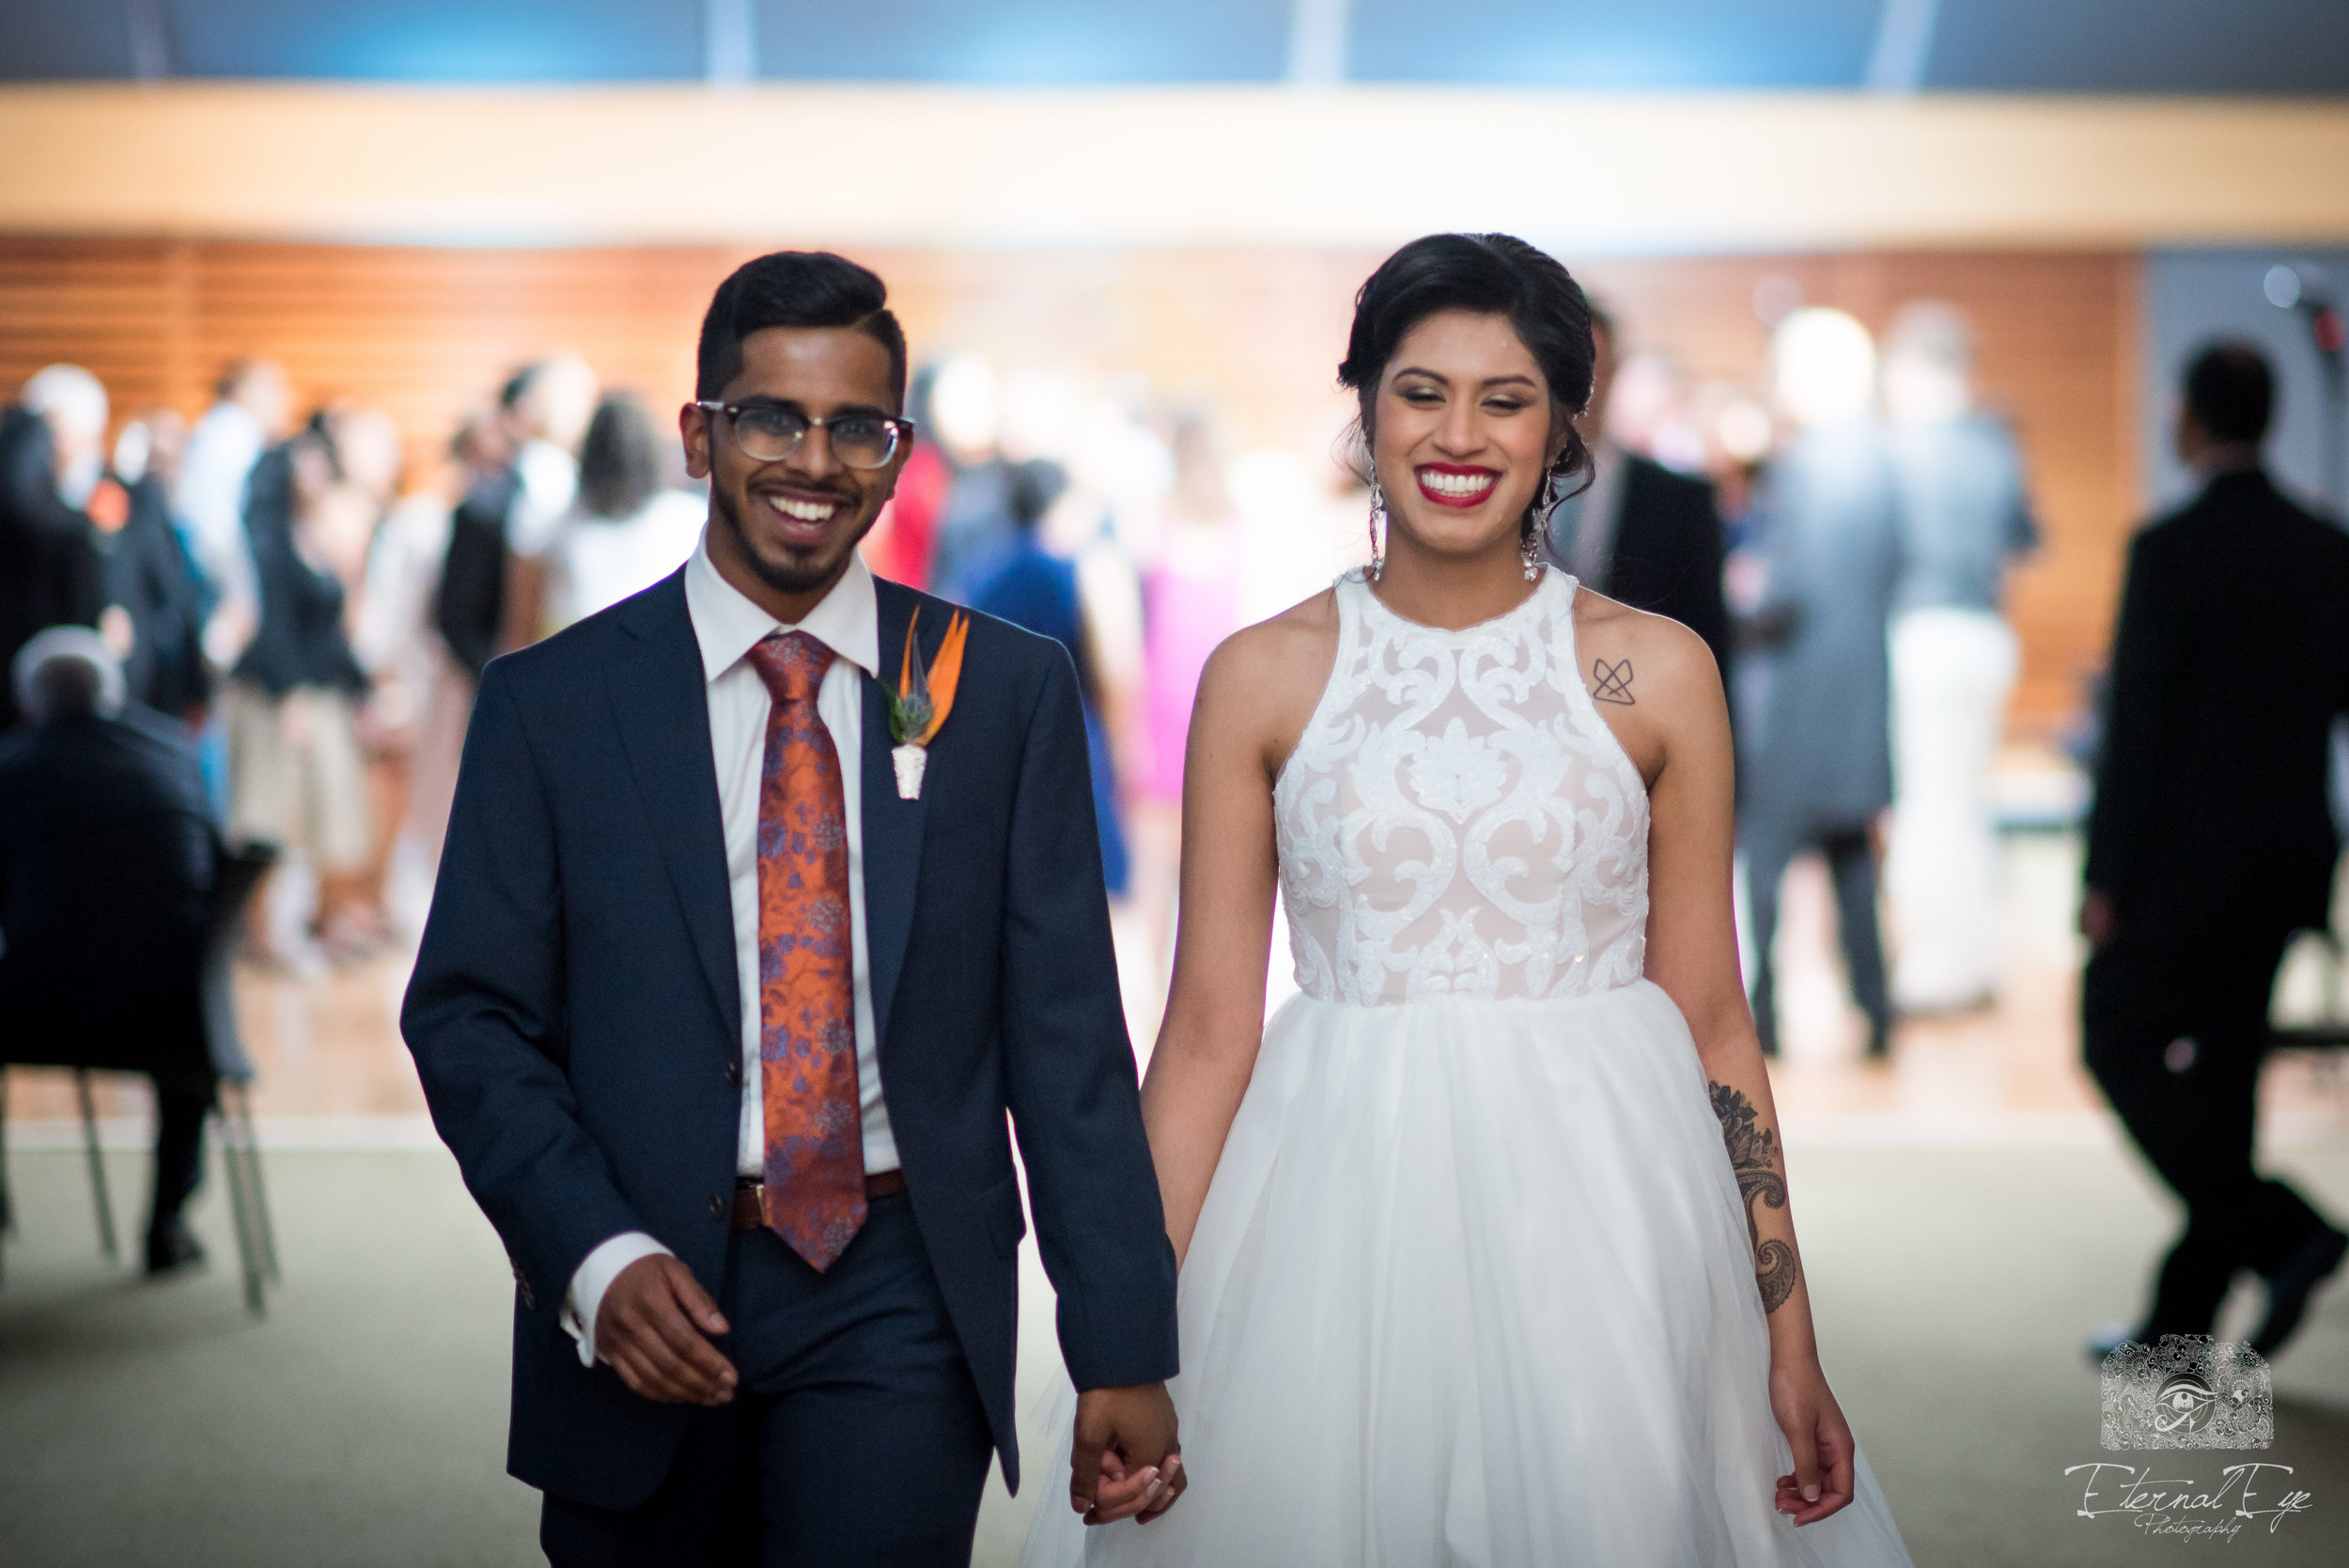 Aleysha and Suraj - April 29th, 2017  (310).jpg